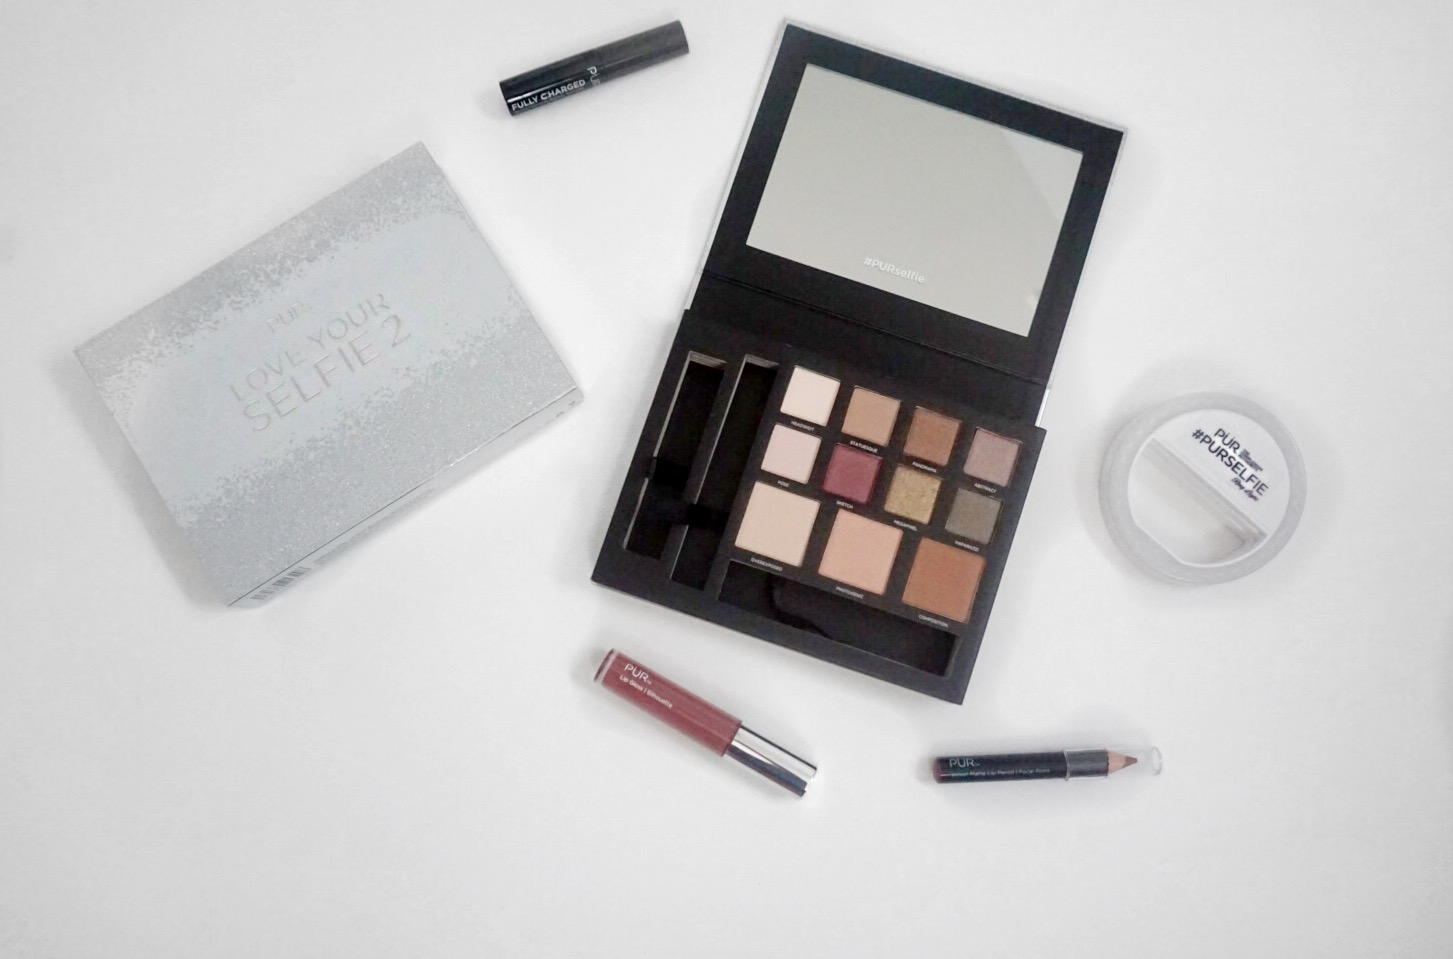 Pur Cosmetics Love Your Selfie 2 Palette Swatches and Tutorial